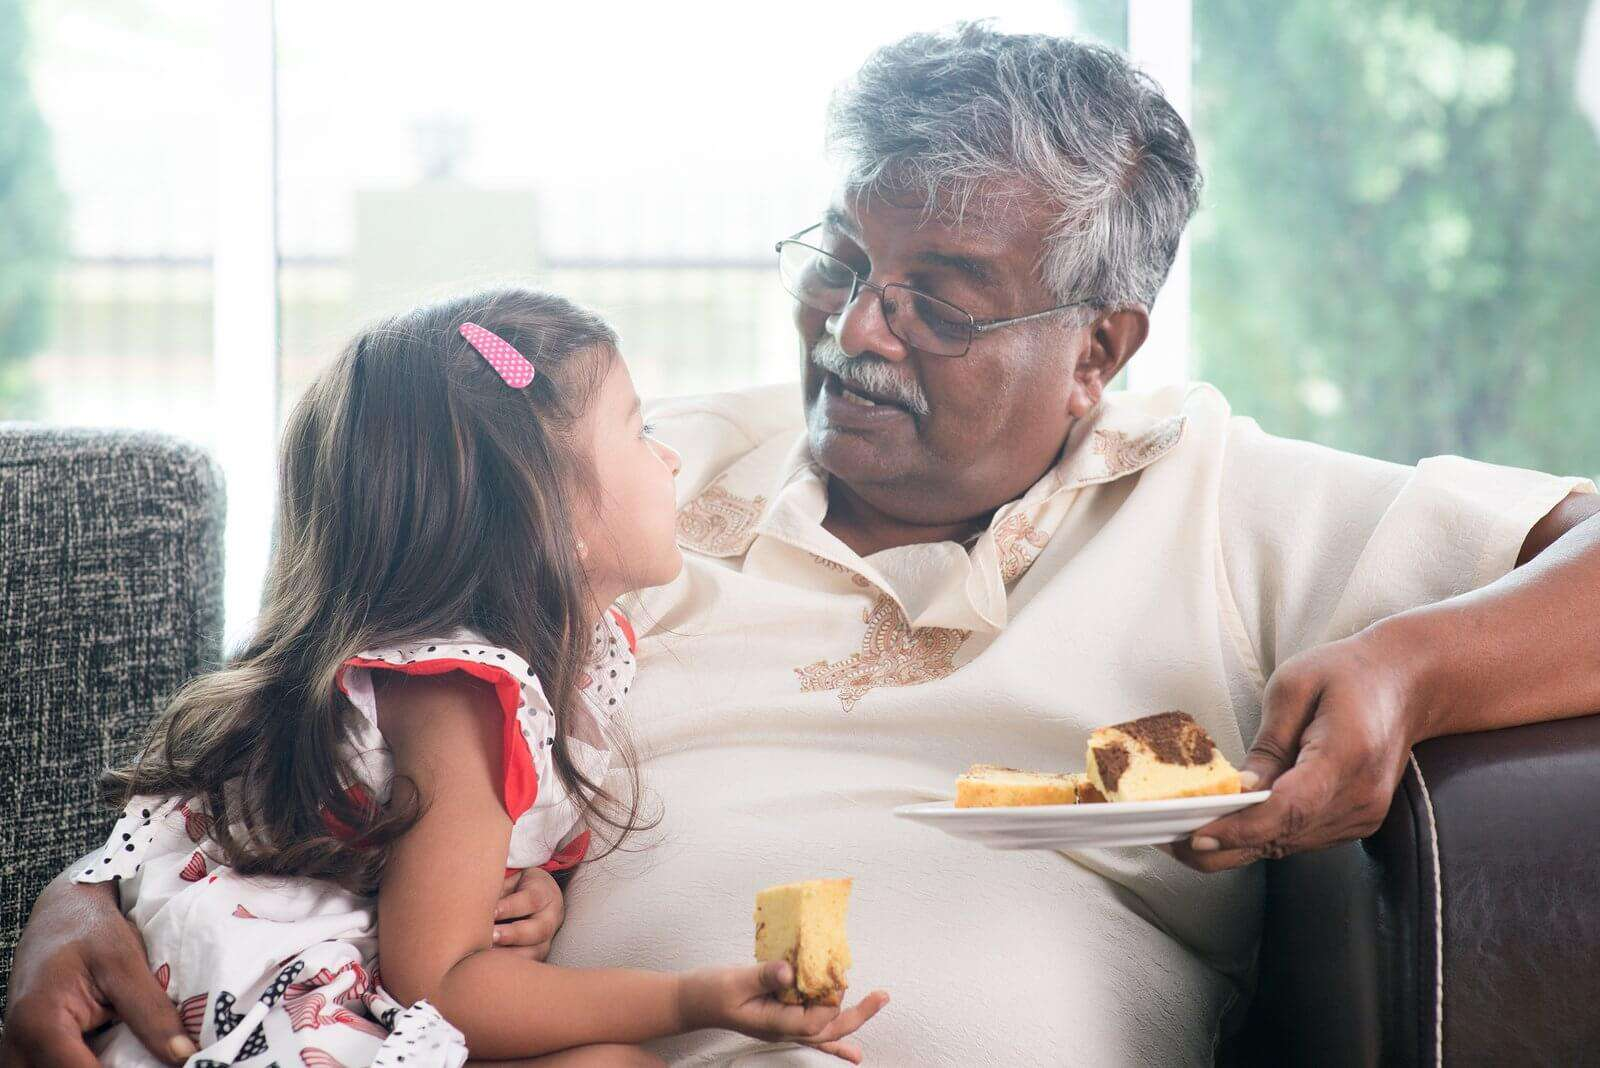 A grandfather eating with his grand daughter